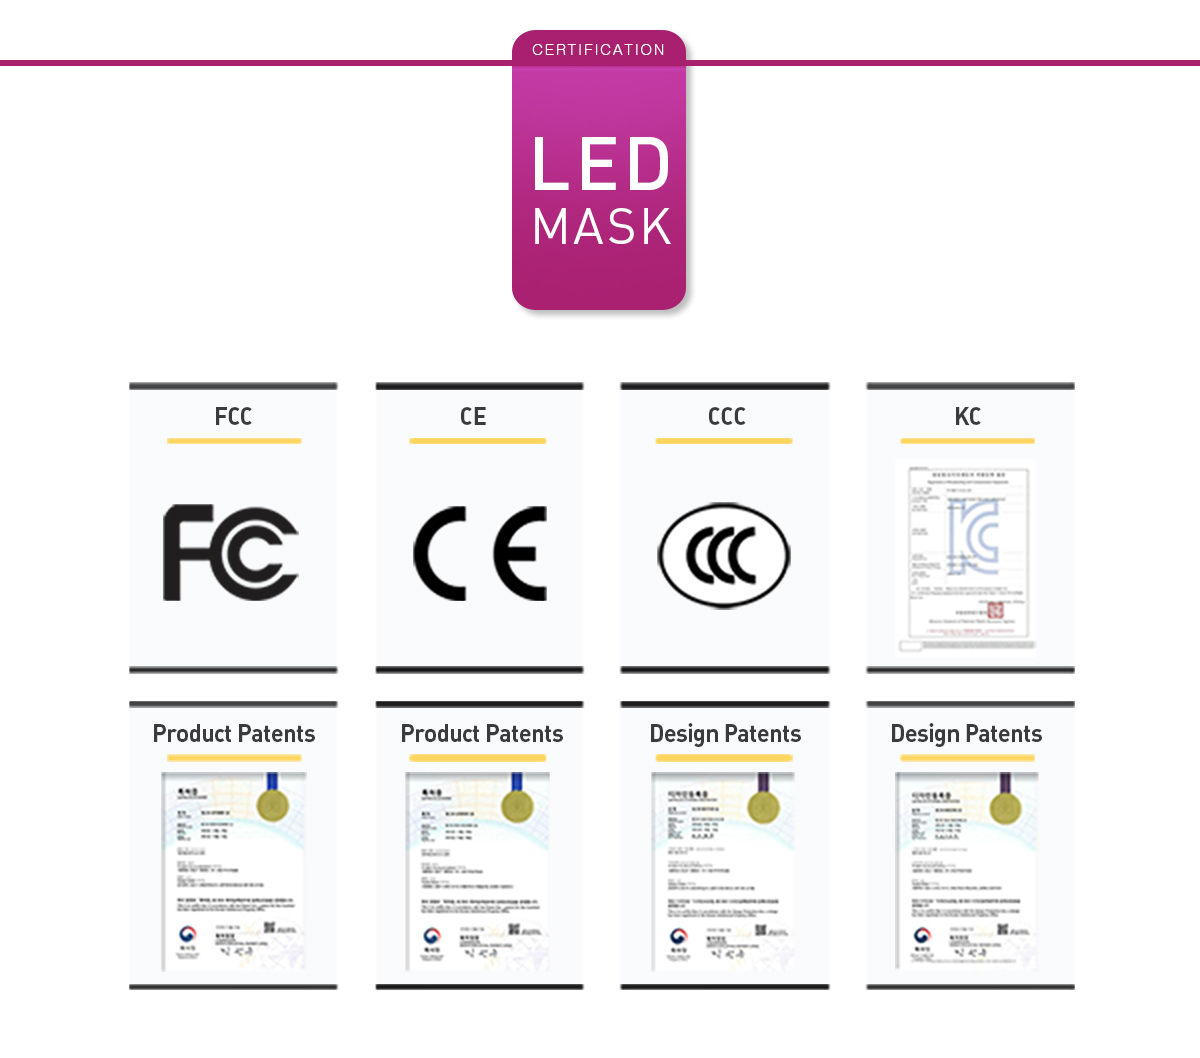 led-mask-description-013019-05.jpg